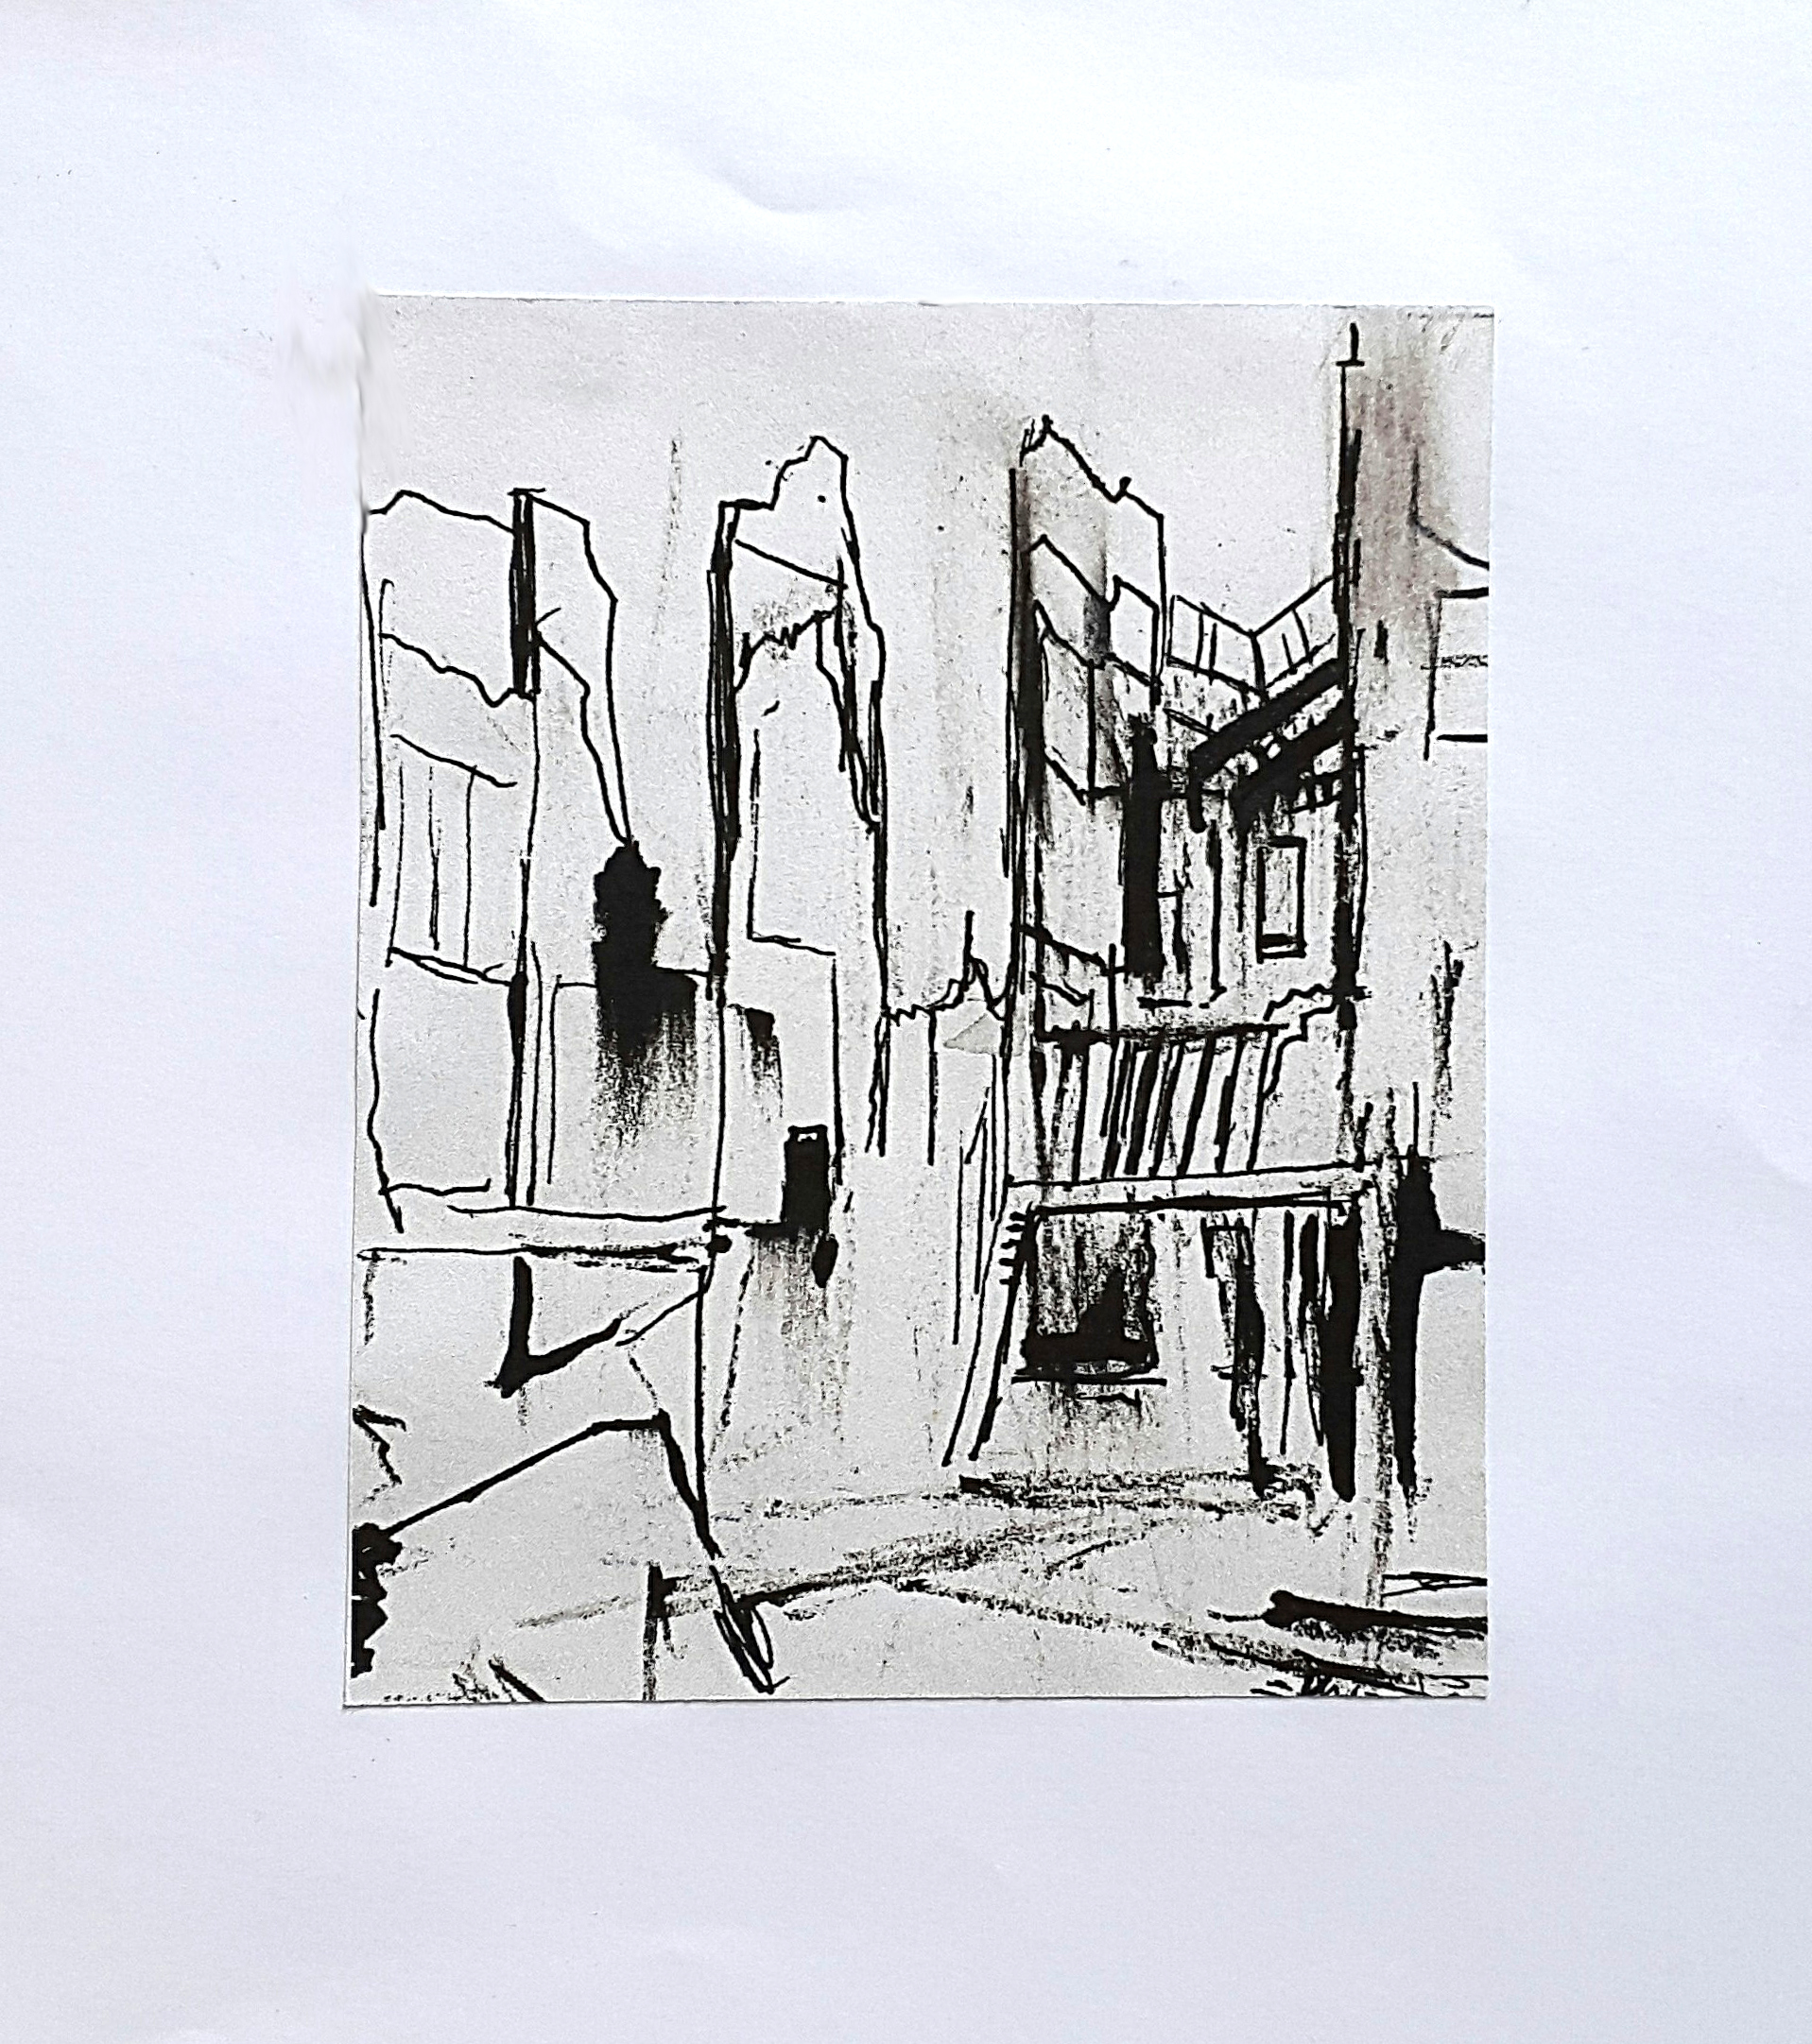 53 Aftermath series 1, 15 x 12 cm, ink and charcoal on paper